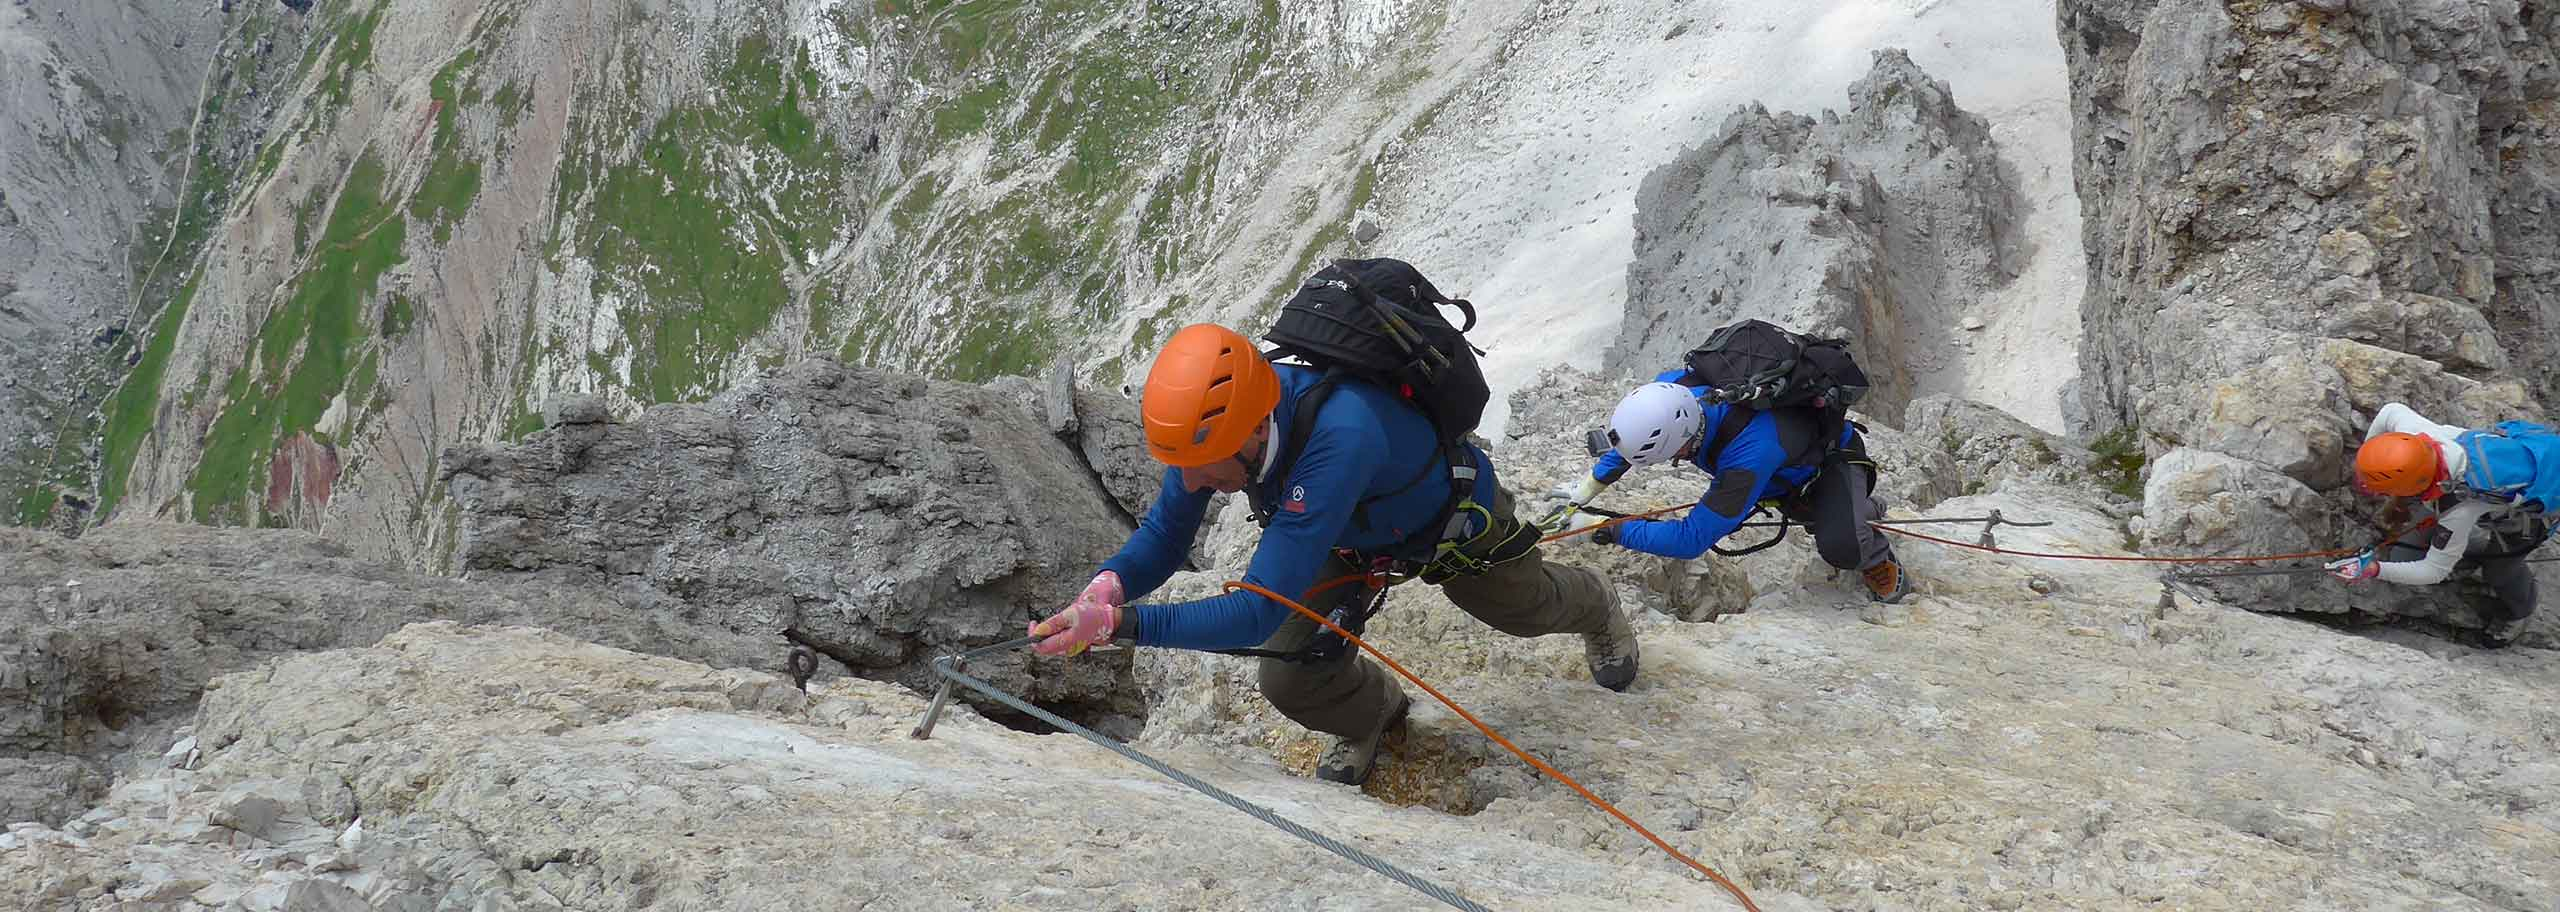 Via Ferrata with Mountain Guide in San Martino di Castrozza